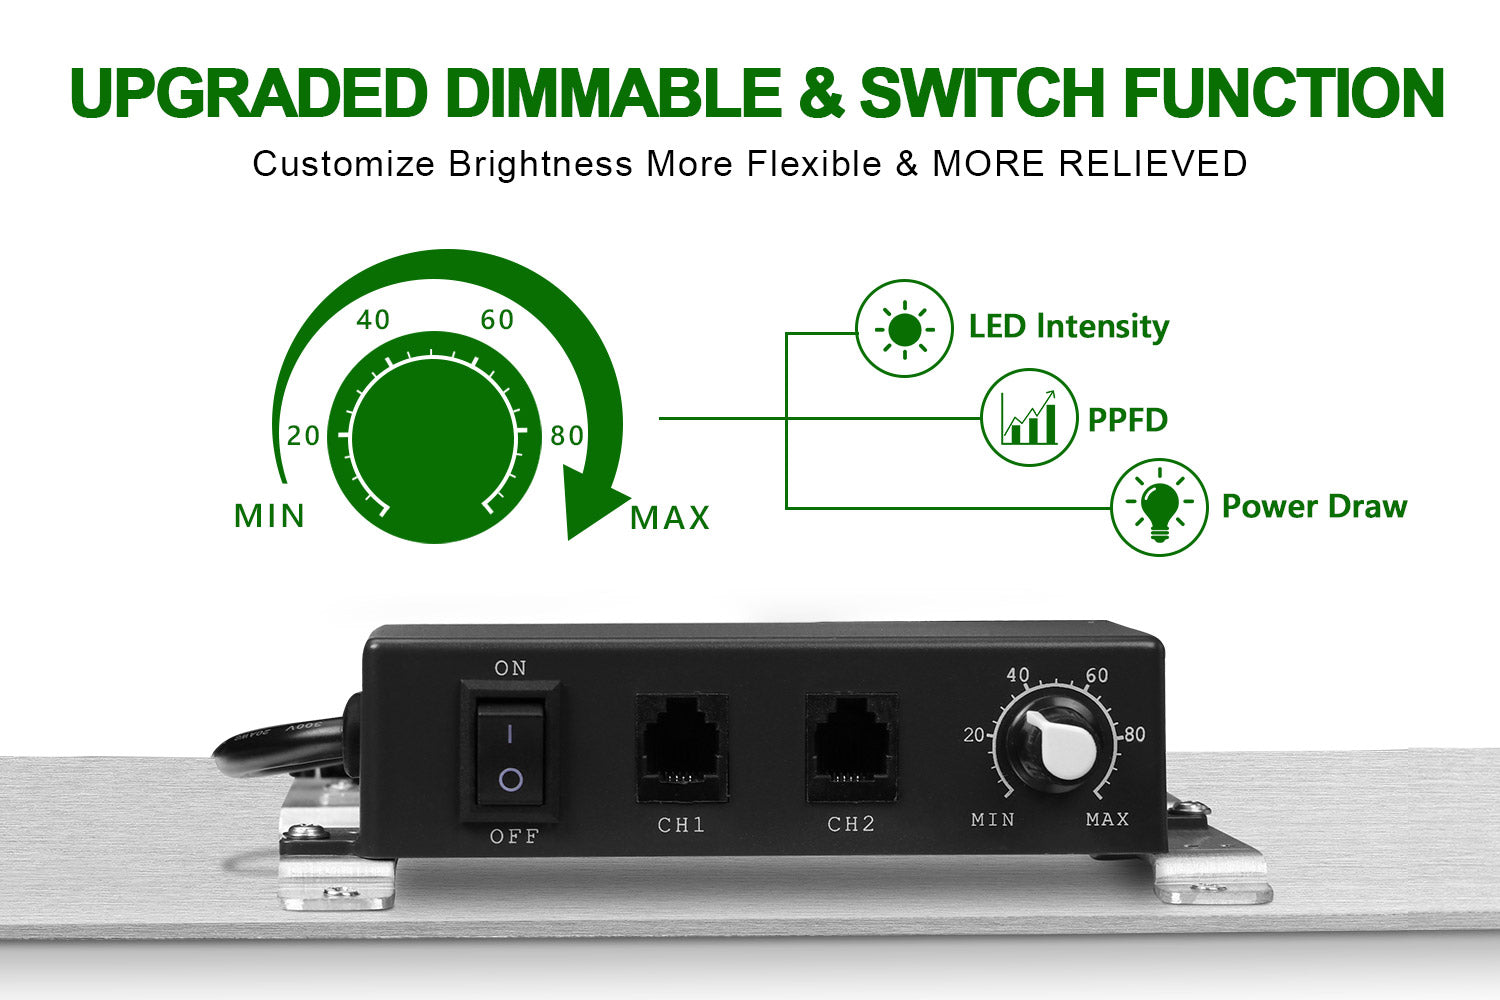 Upgraded Dimmer & Switch Function shown spider farmer Spider Farmer sf4000 SF4000 sf2000 SF2000 & SF1000 sf1000  spiderfarmer LED Grow Lights UK Official Partner Supplier/Retailer